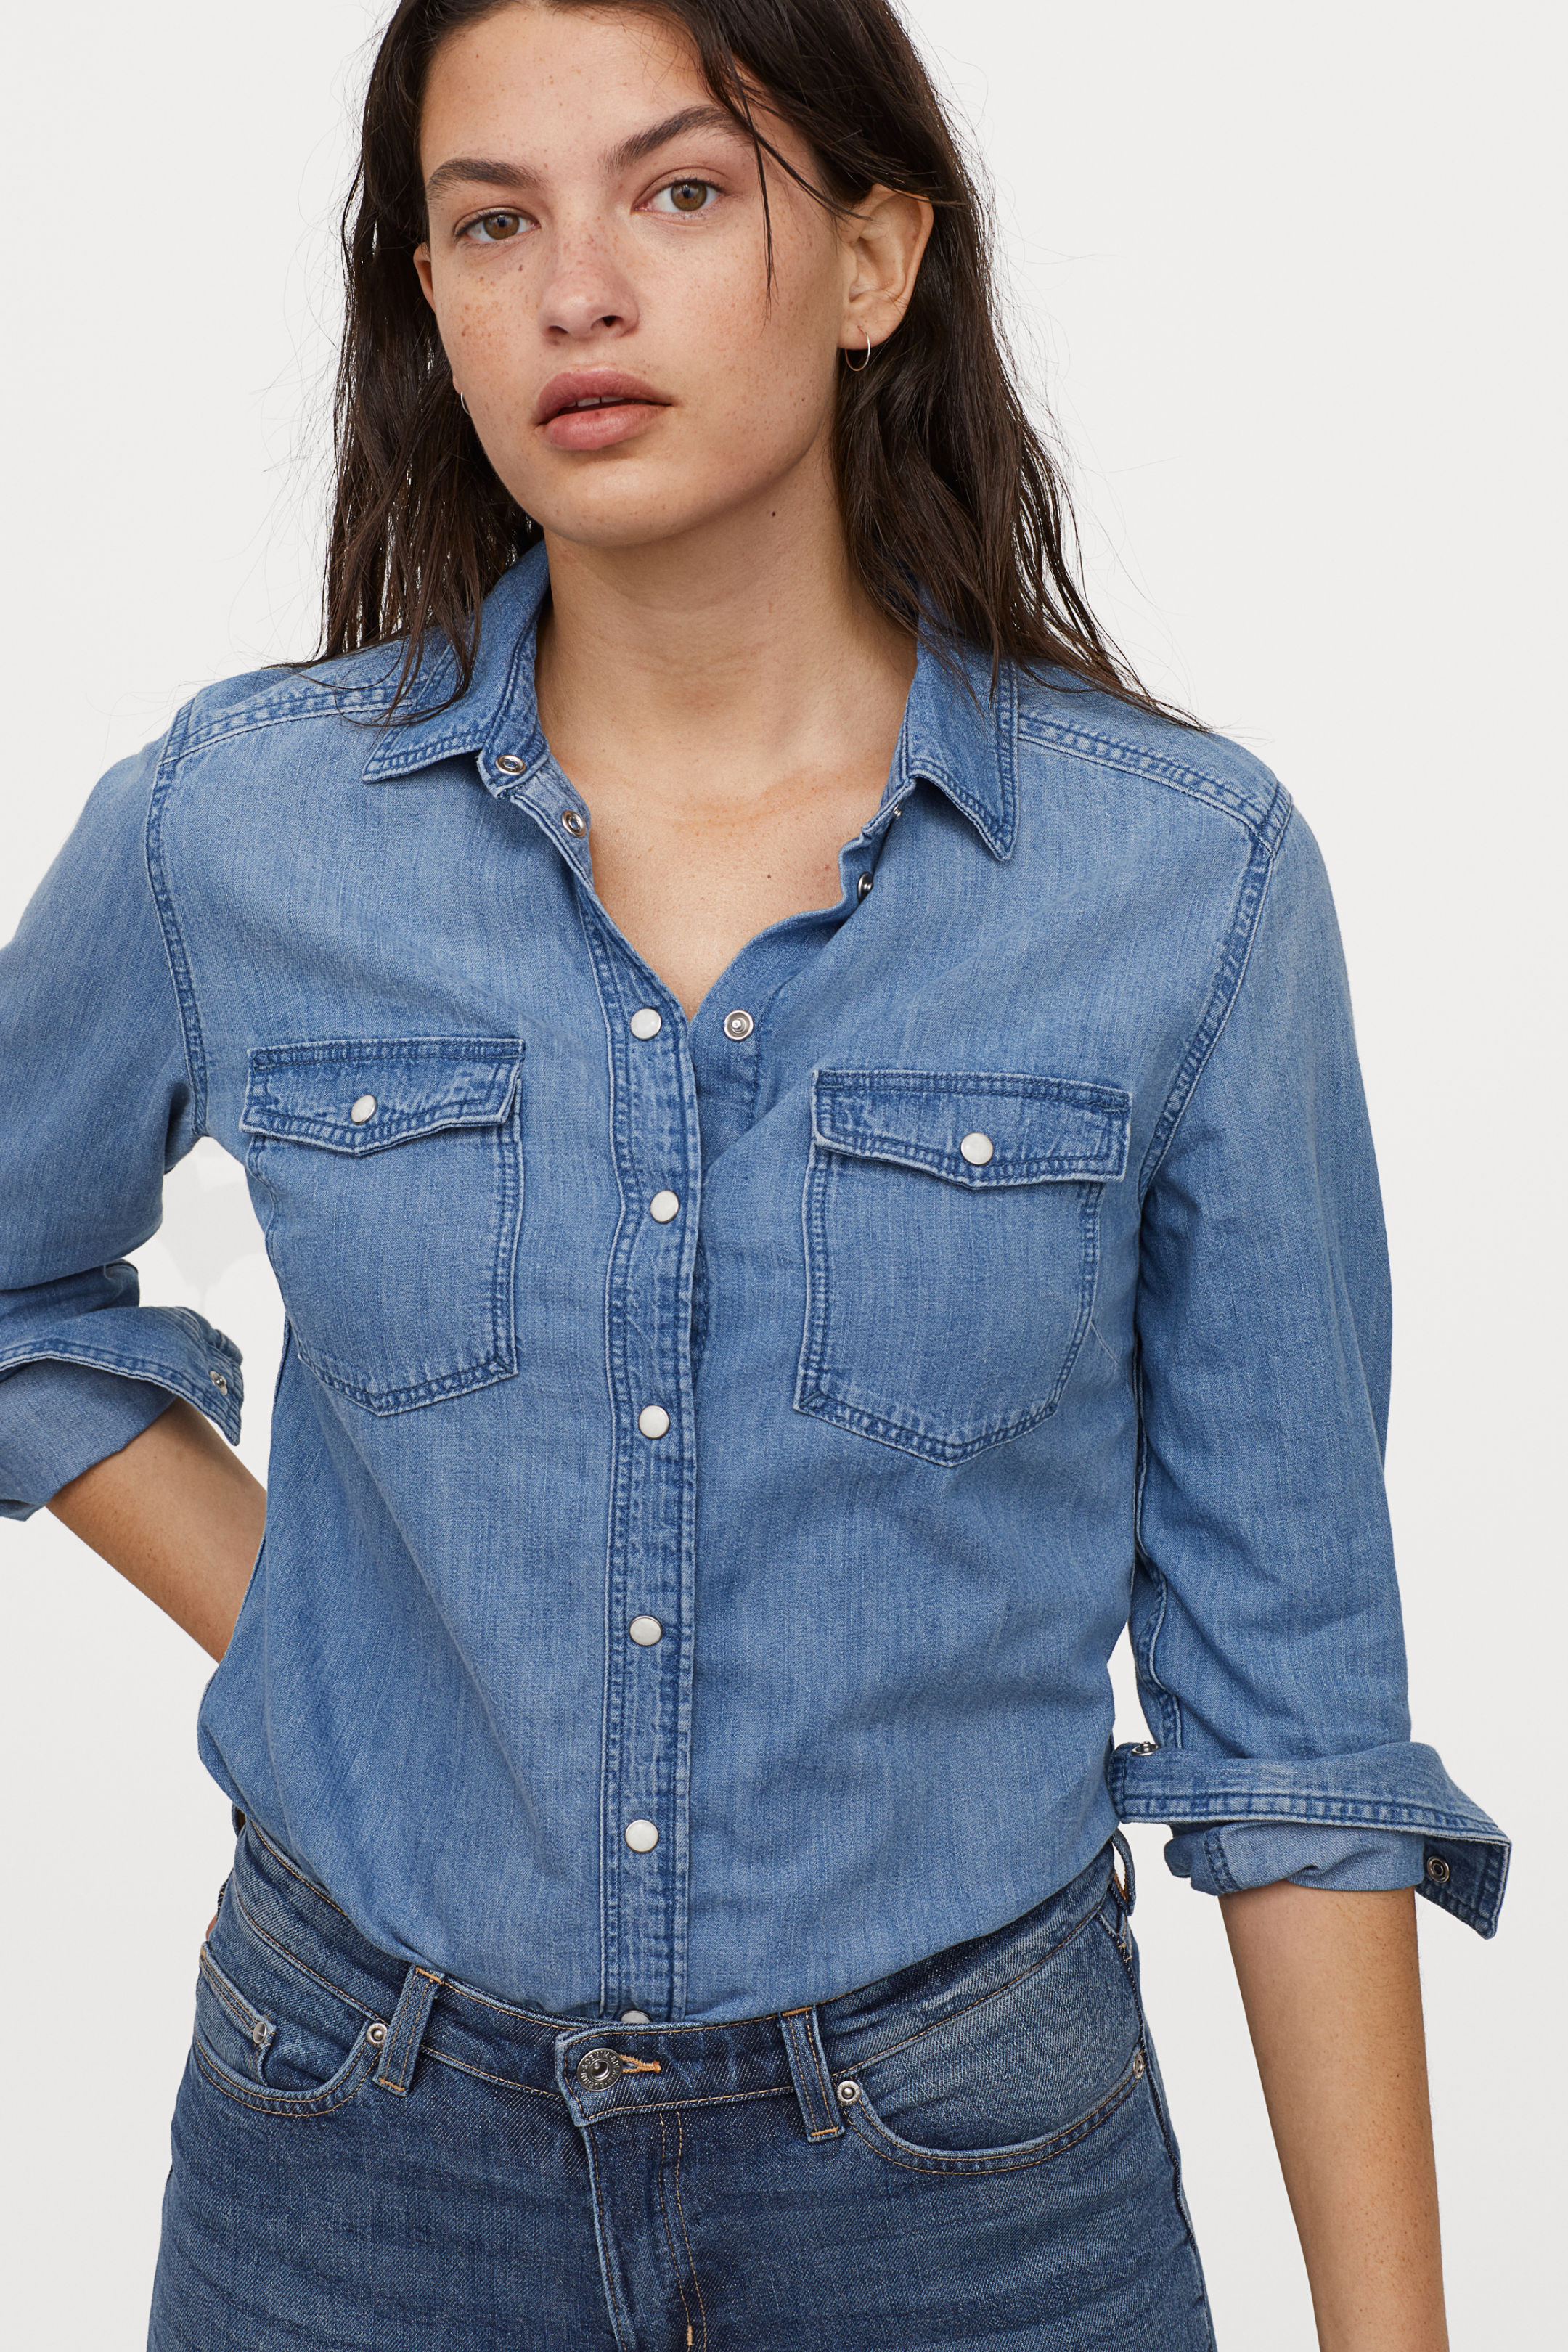 Body Sitting Jeans Shirt